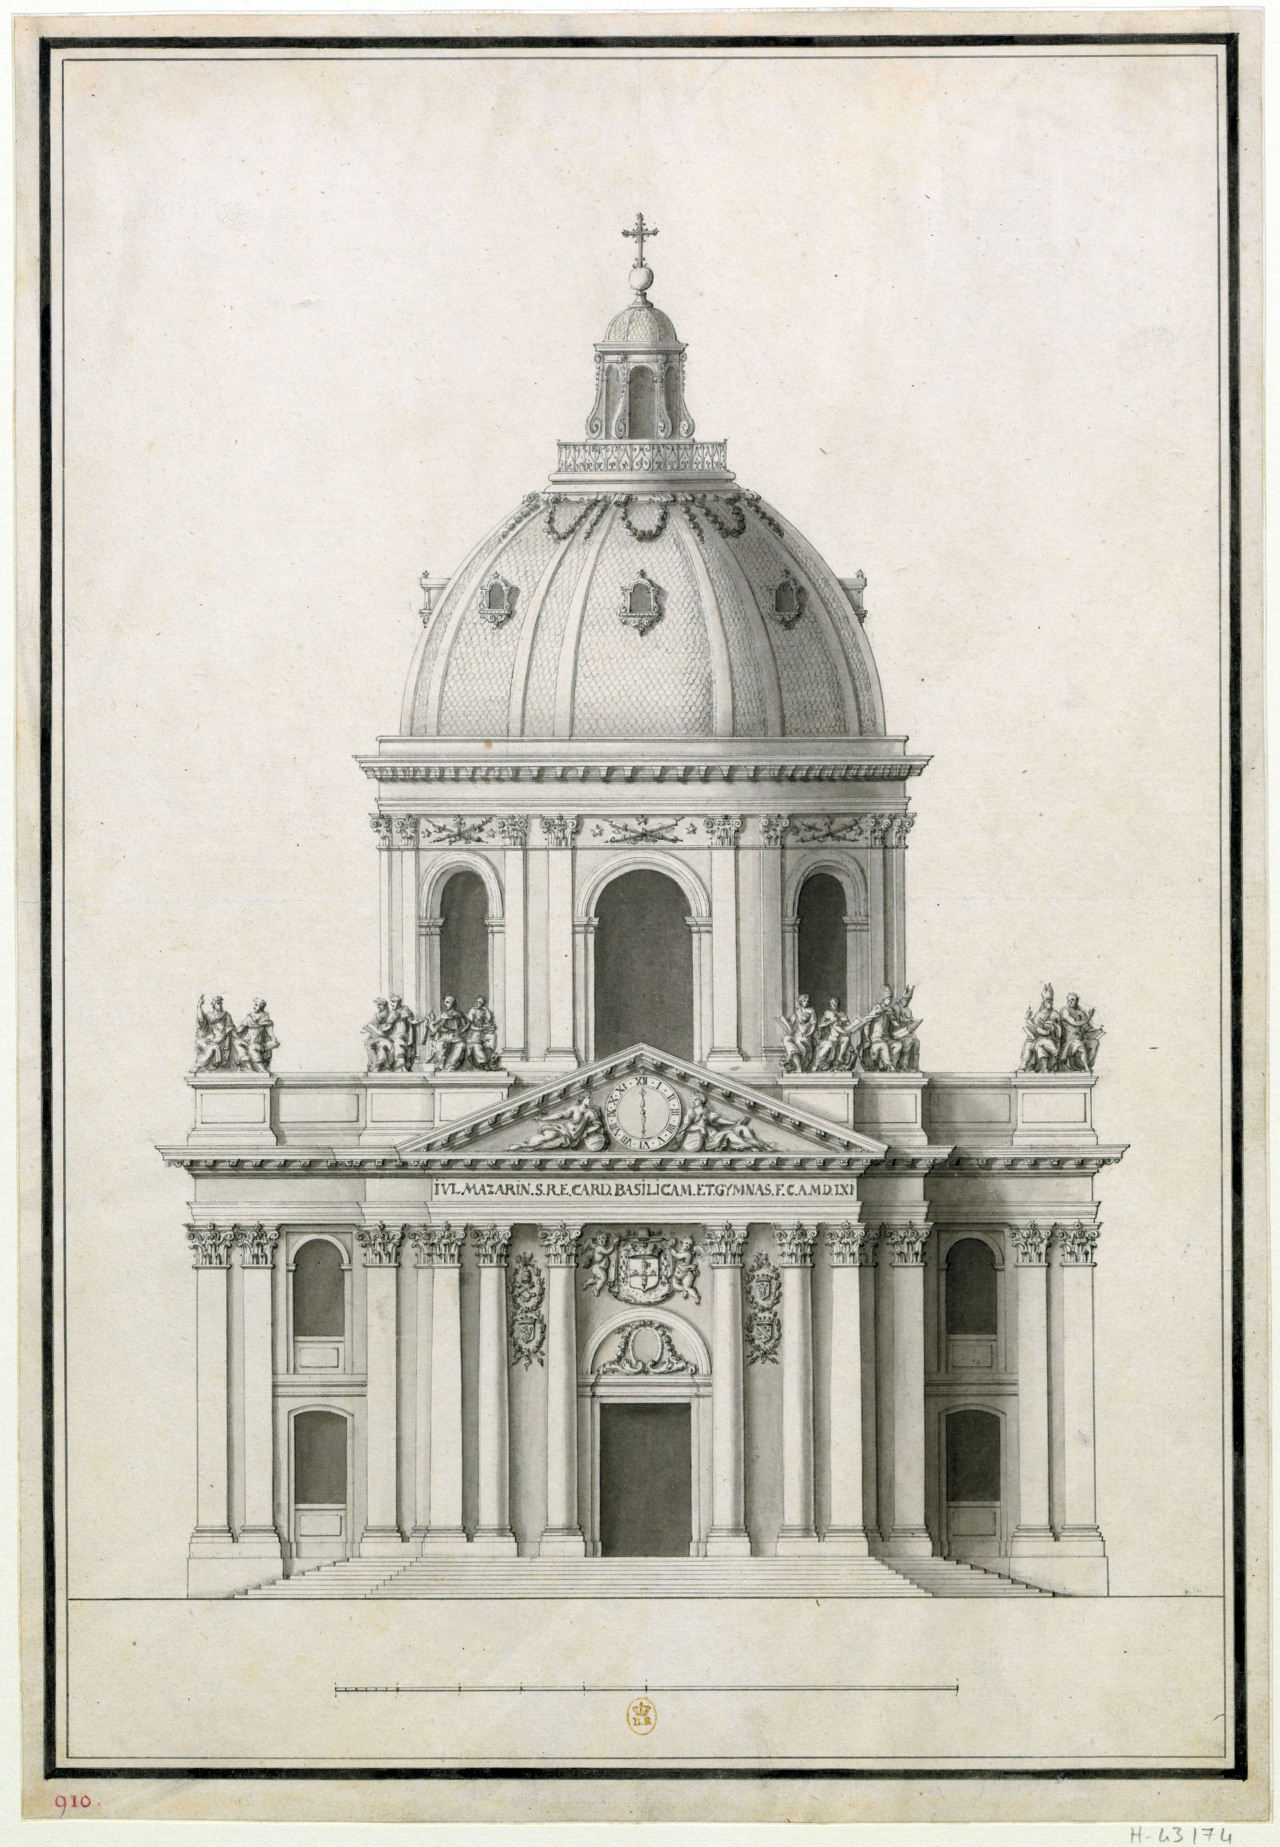 Elevation of the church of the Collège des Quatre Nations, Paris